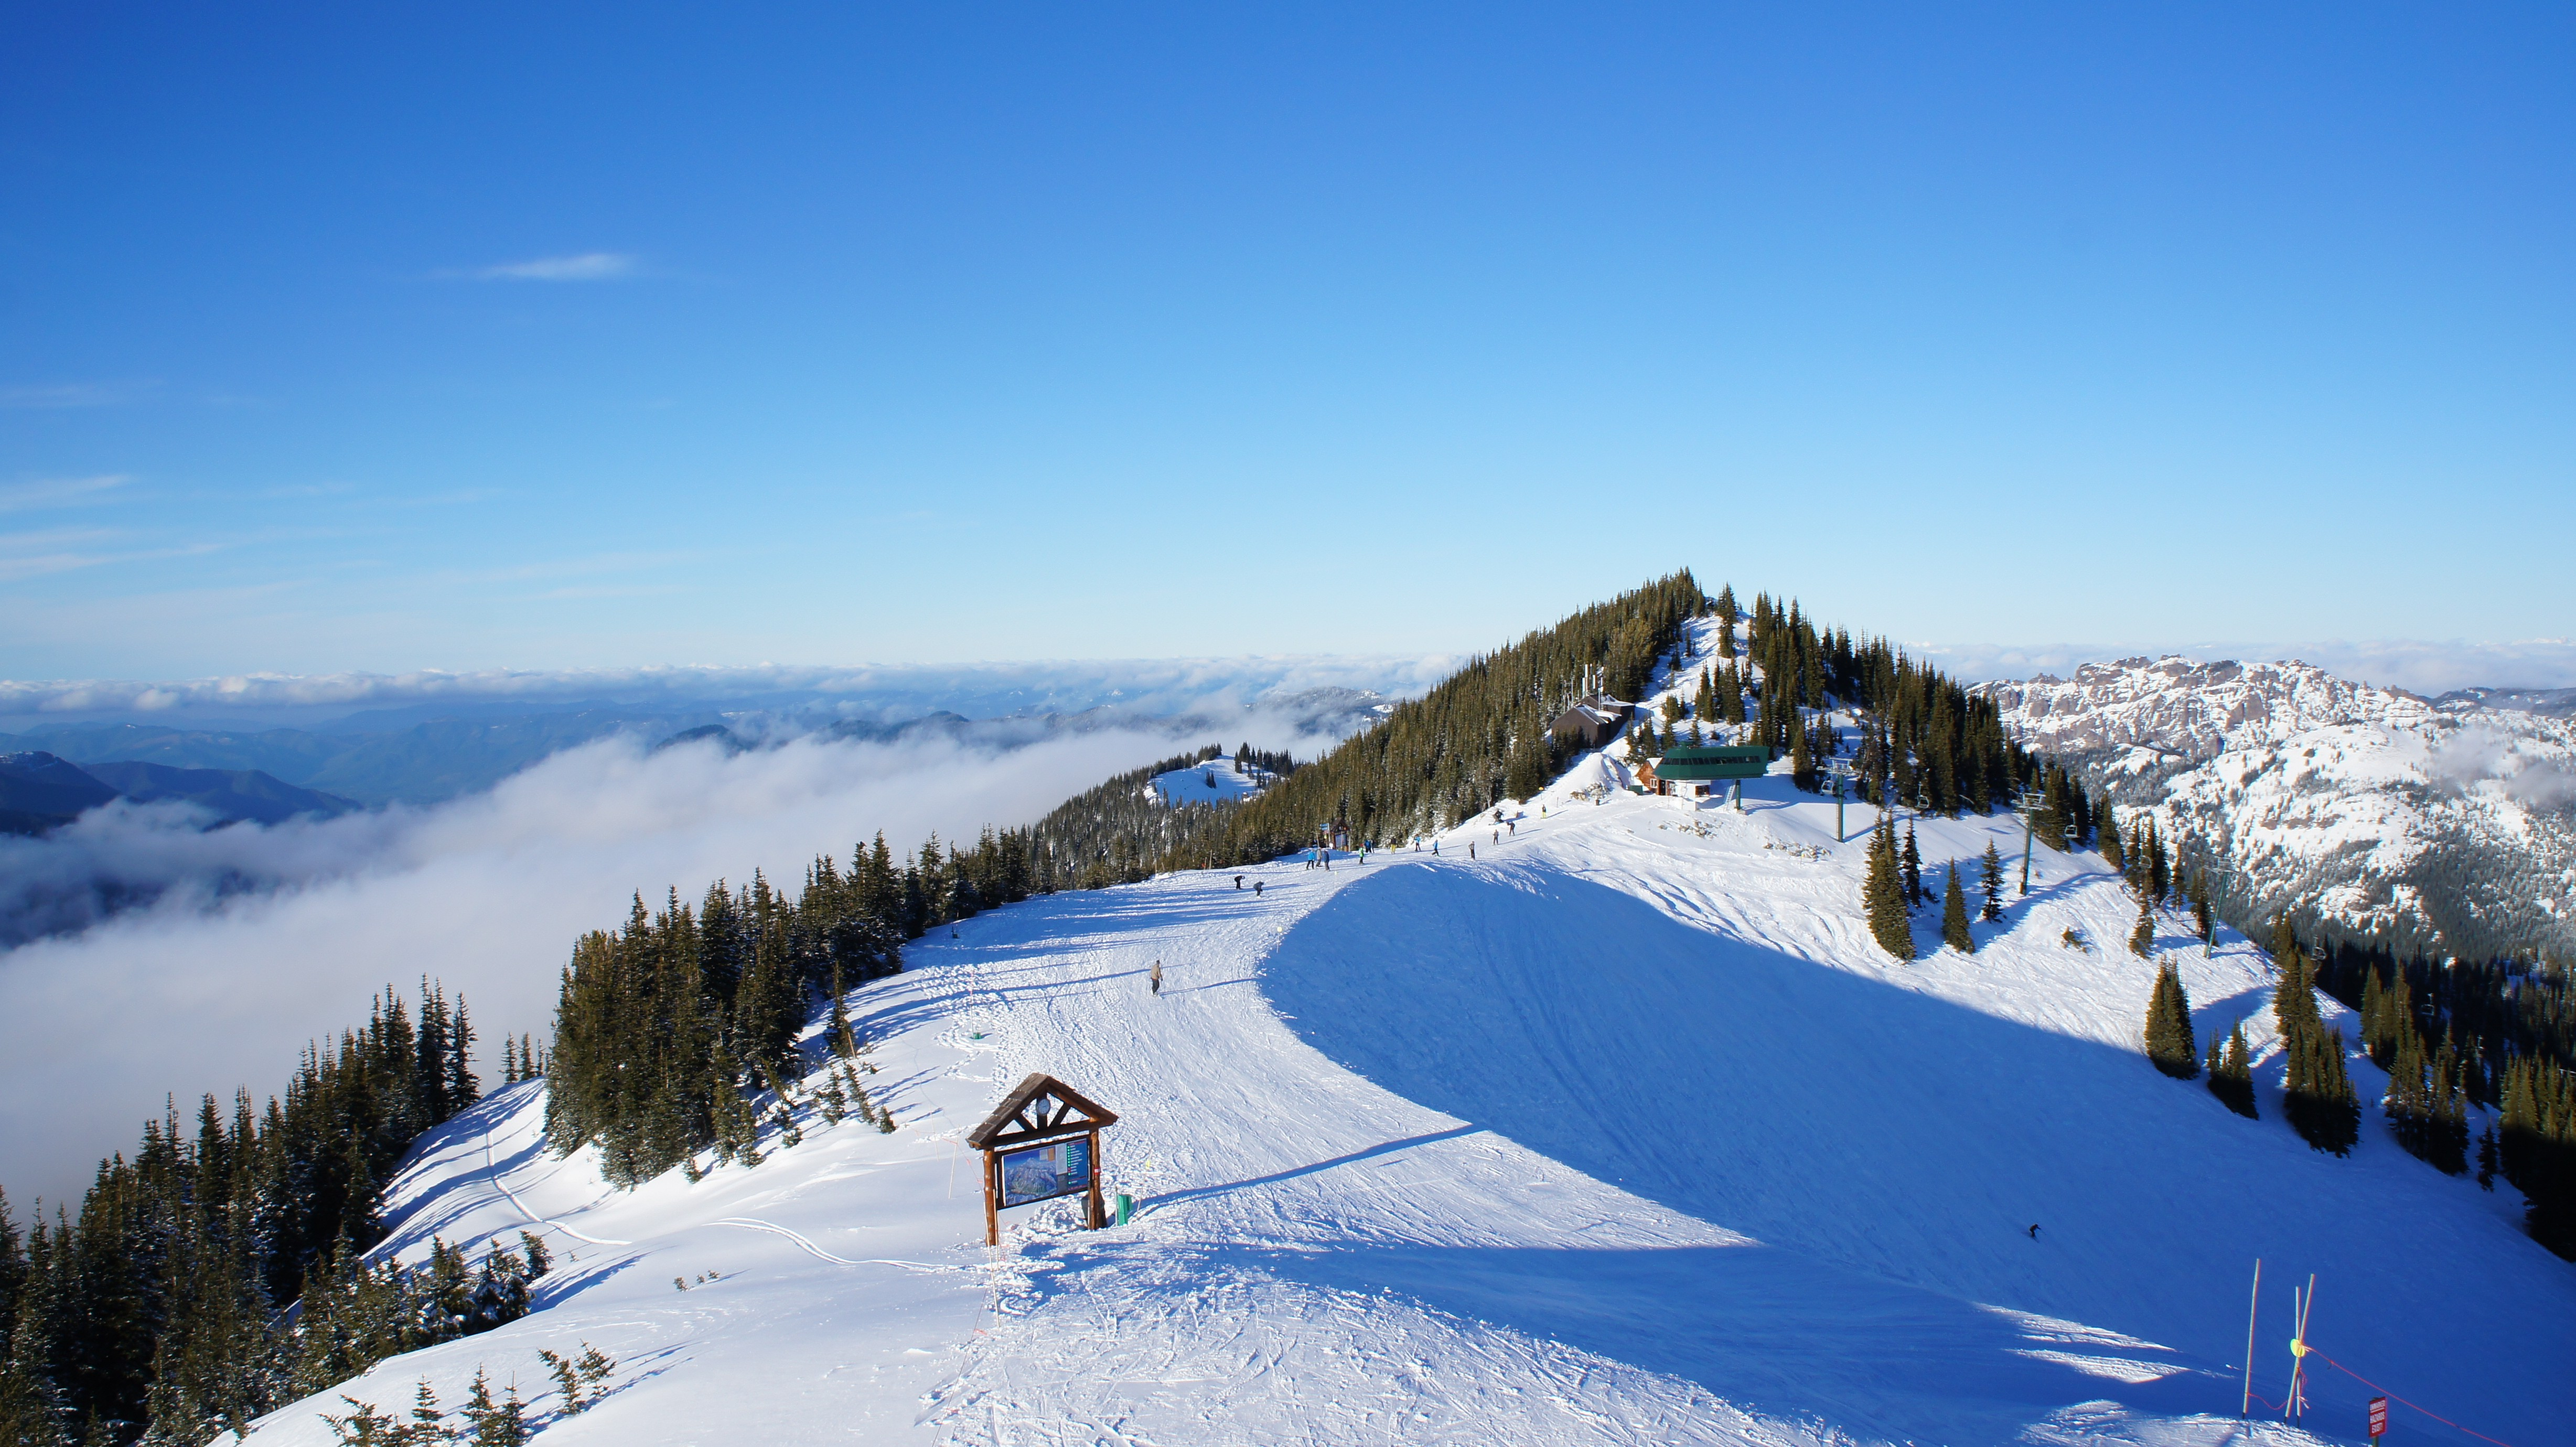 Ski resort in the United States wallpapers and images   wallpapers 4912x2760